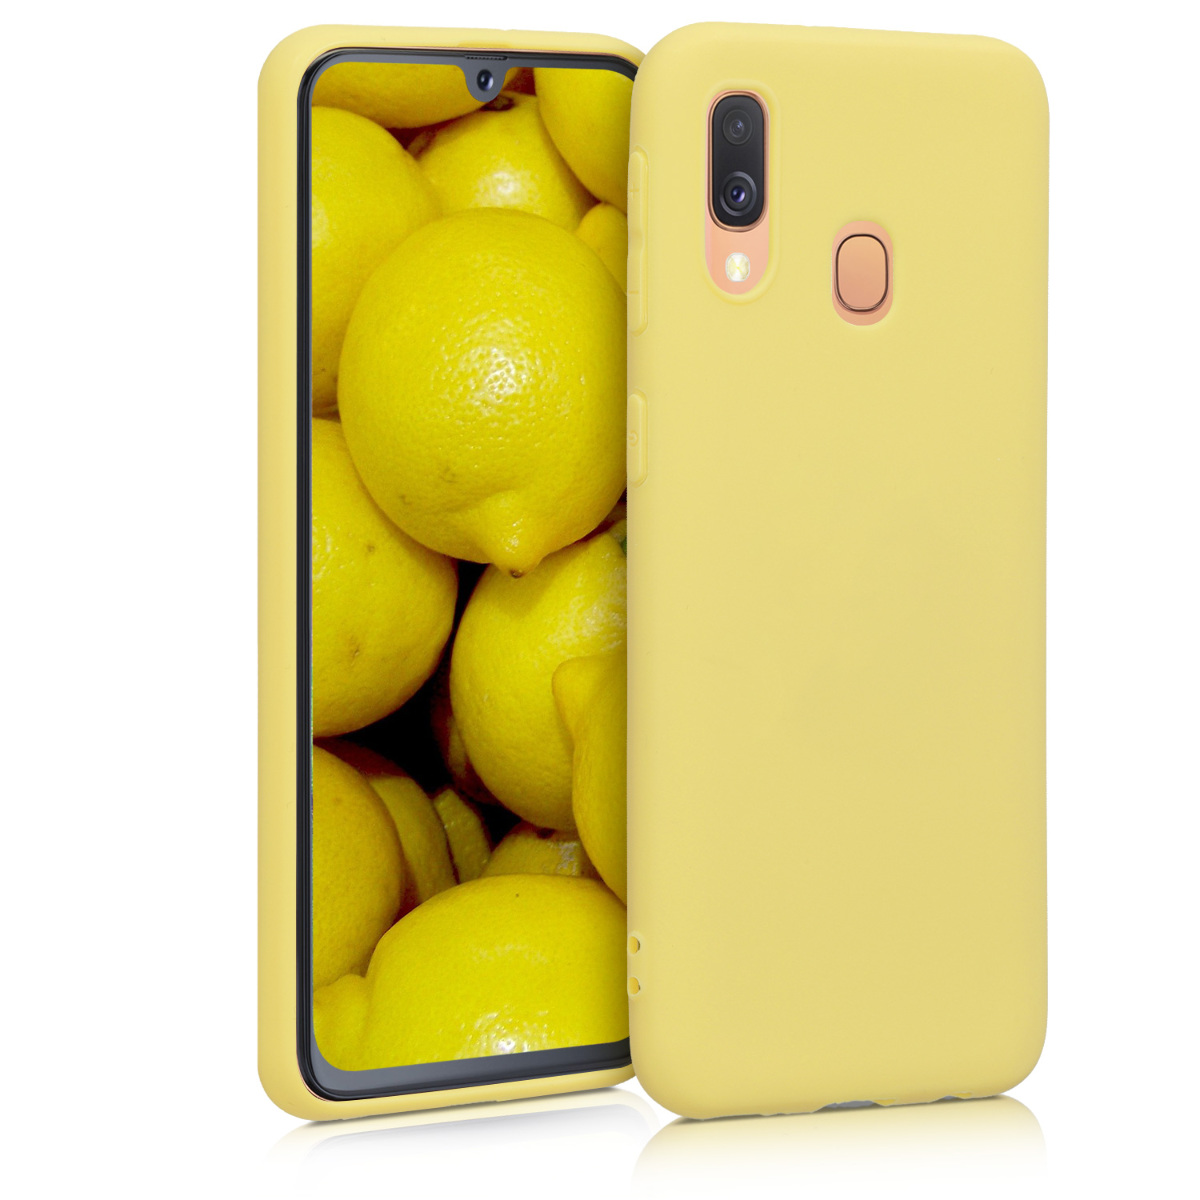 KW Θήκη Σιλικόνης Samsung Galaxy A40 - Yellow Matte (48547.49)